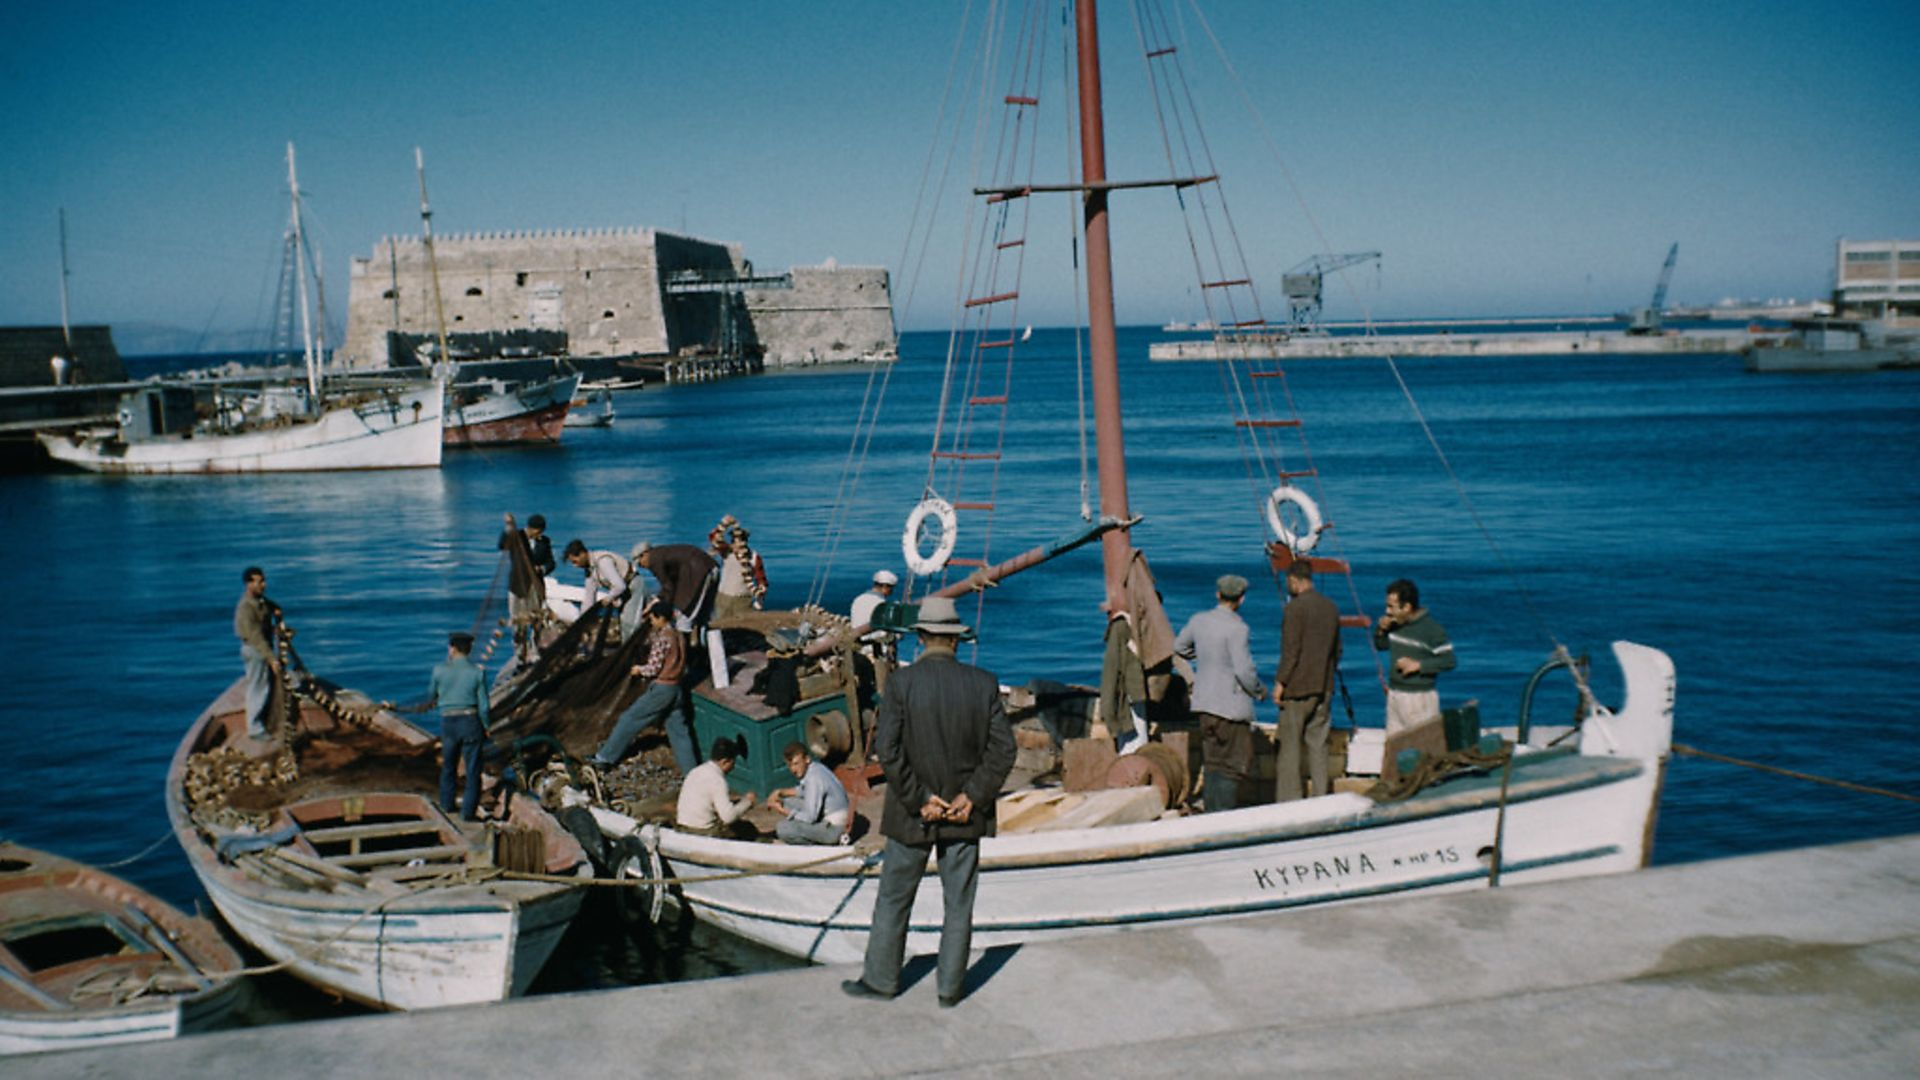 Fishing boats in Heraklion harbour, Crete, Greece, circa 1965. Pictures: Garry Hogg/Getty Images - Credit: Getty Images